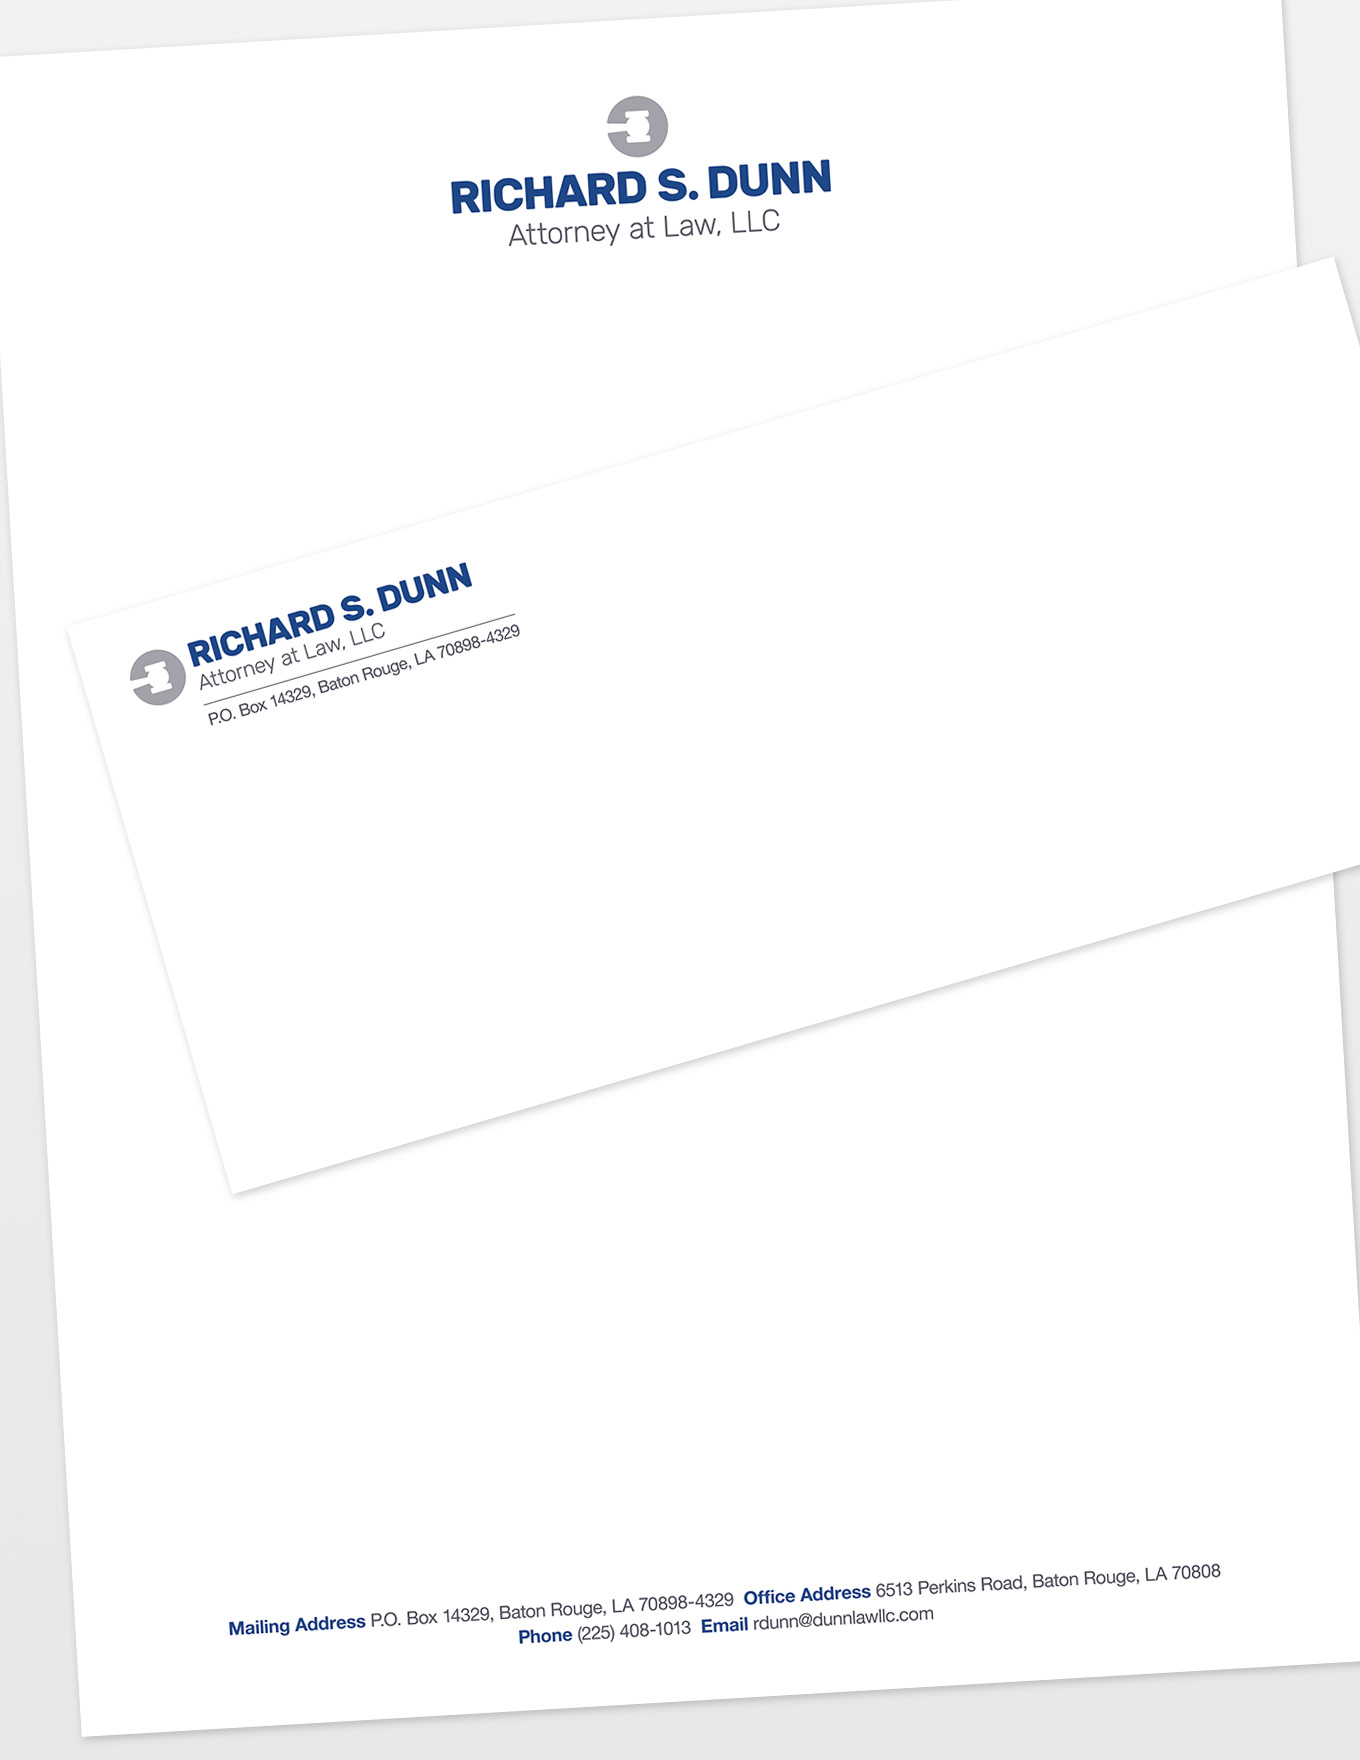 Richard S. Dunn, Attorney at Law Letterhead & Envelopes